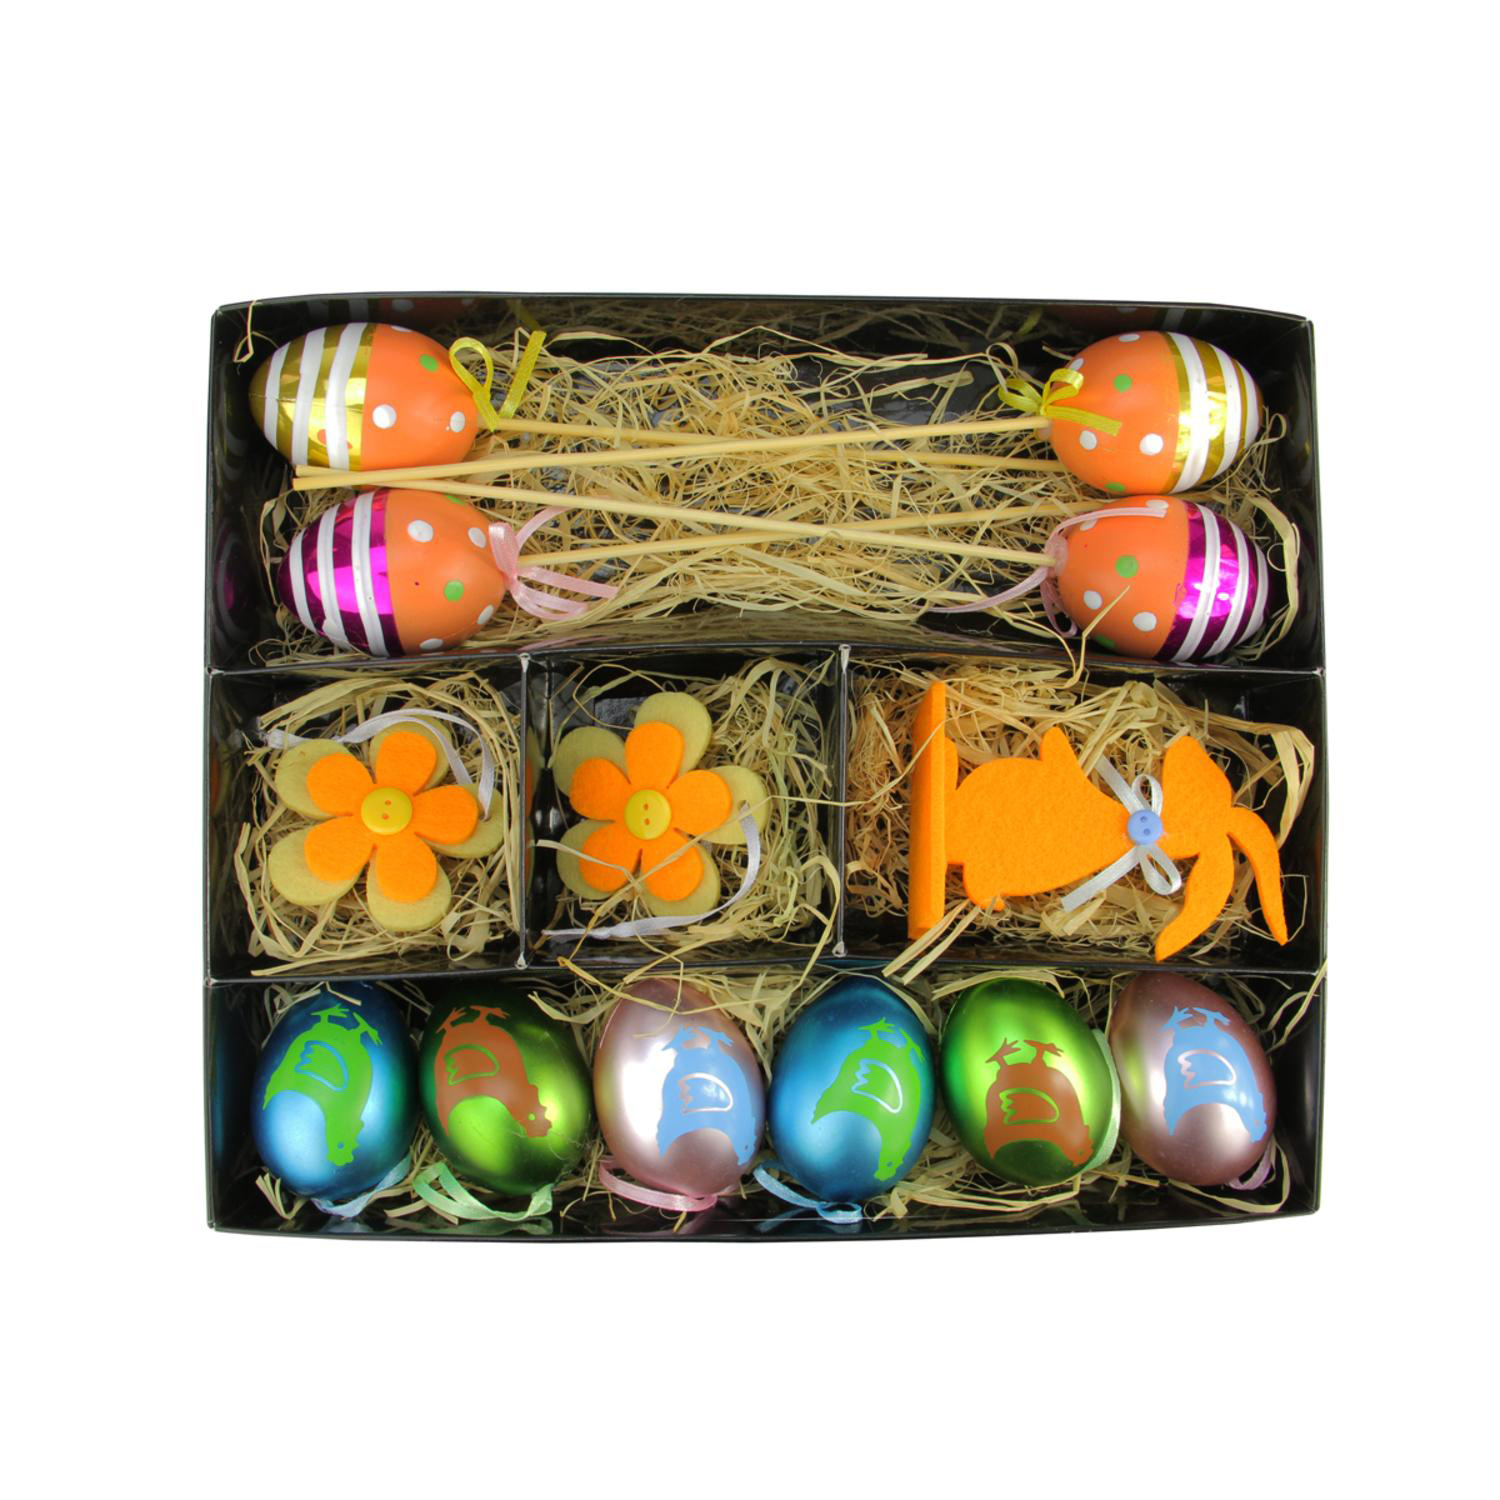 Multicolored Easter Egg, Flower & Bunny Decorations Set of 13